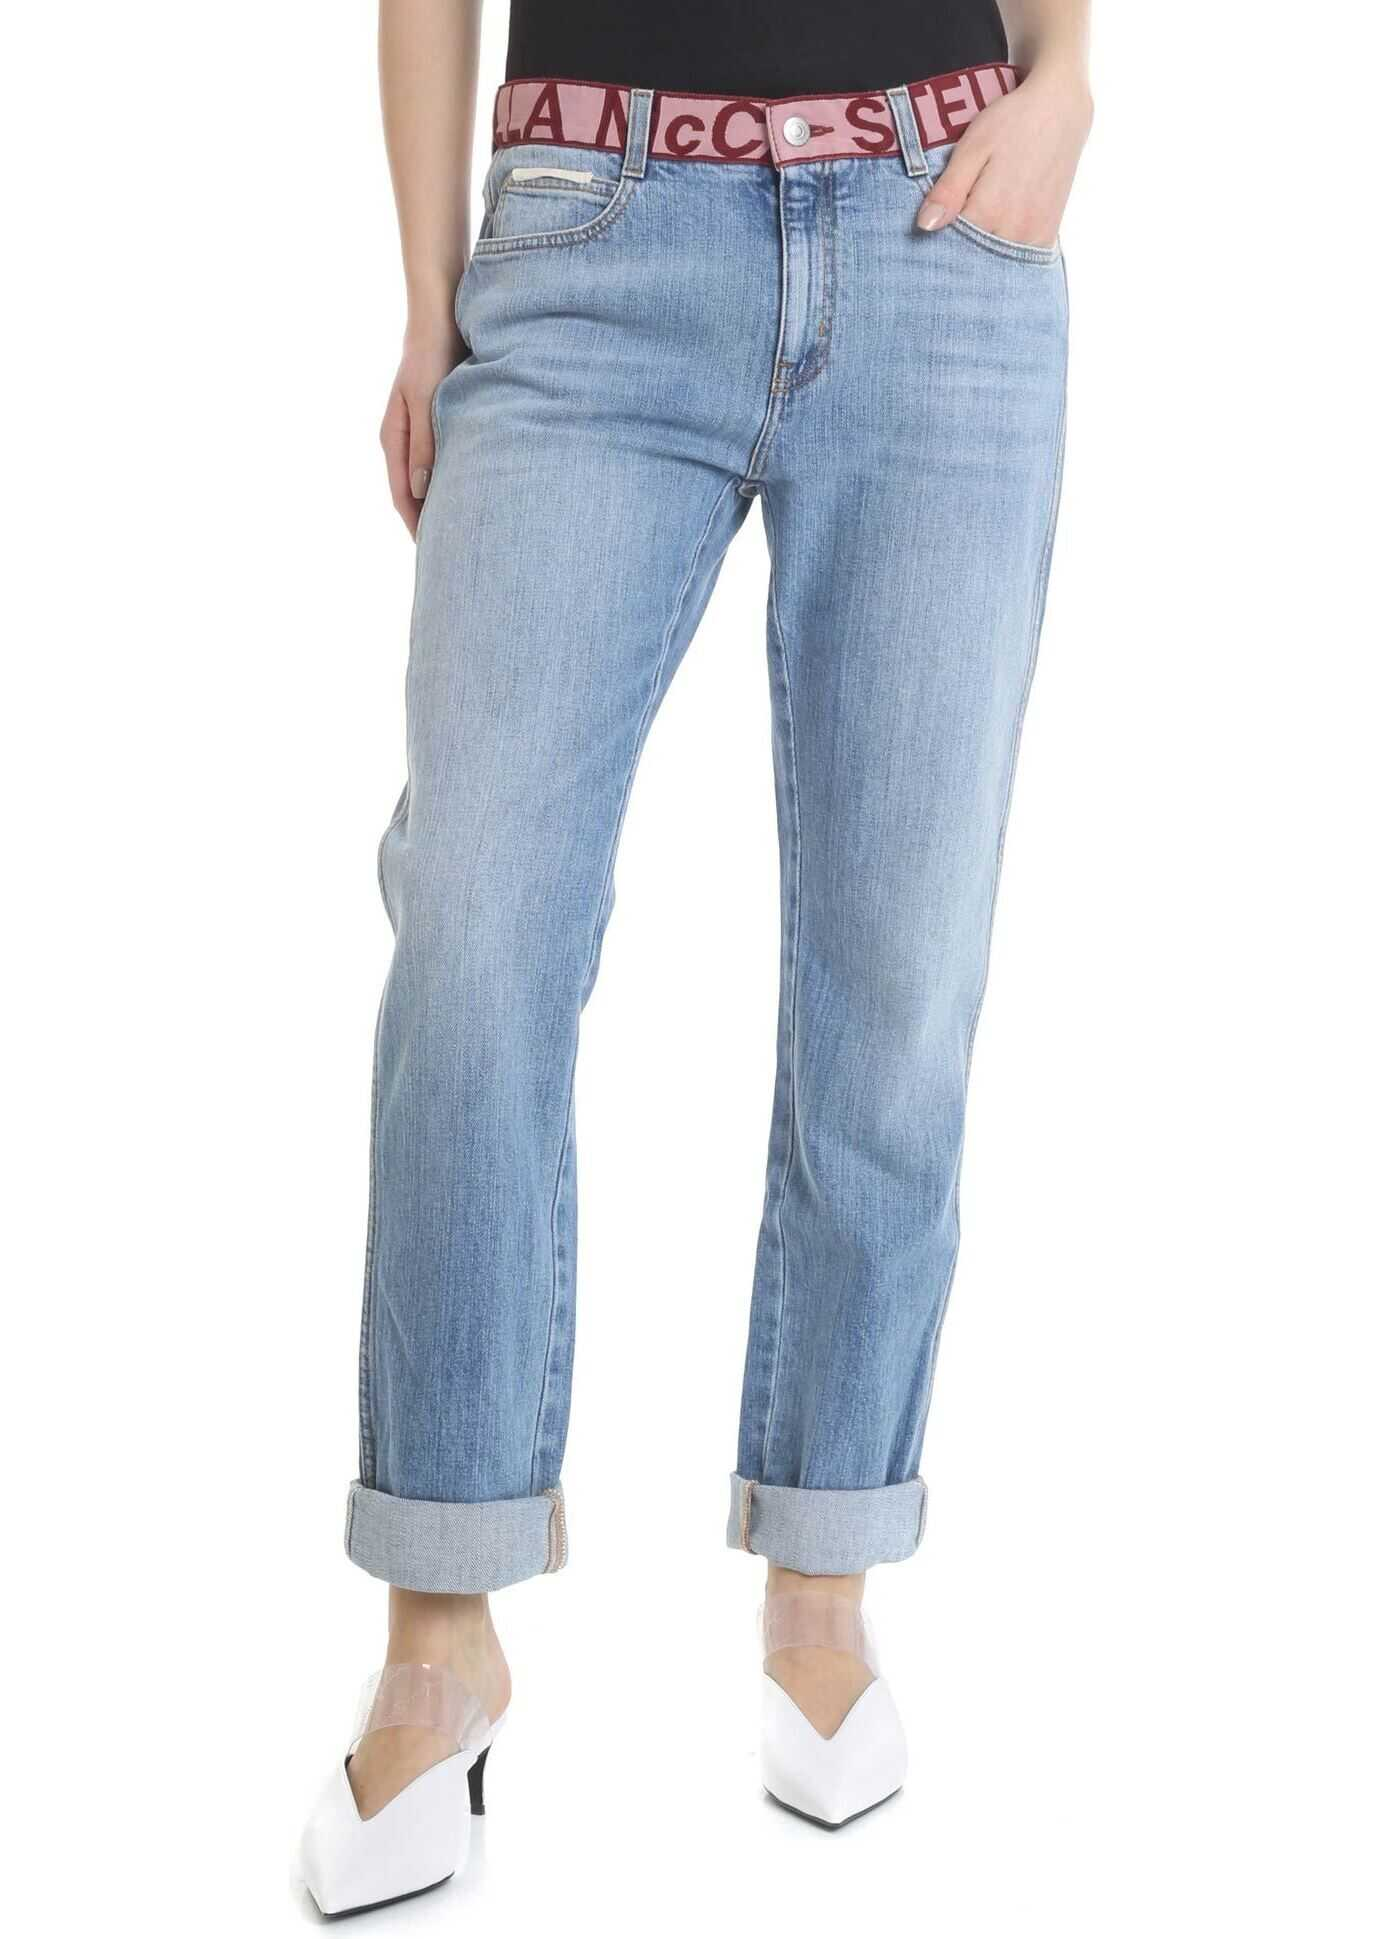 adidas by Stella McCartney Stella Mccartney Boyfriend Jeans Light Blue